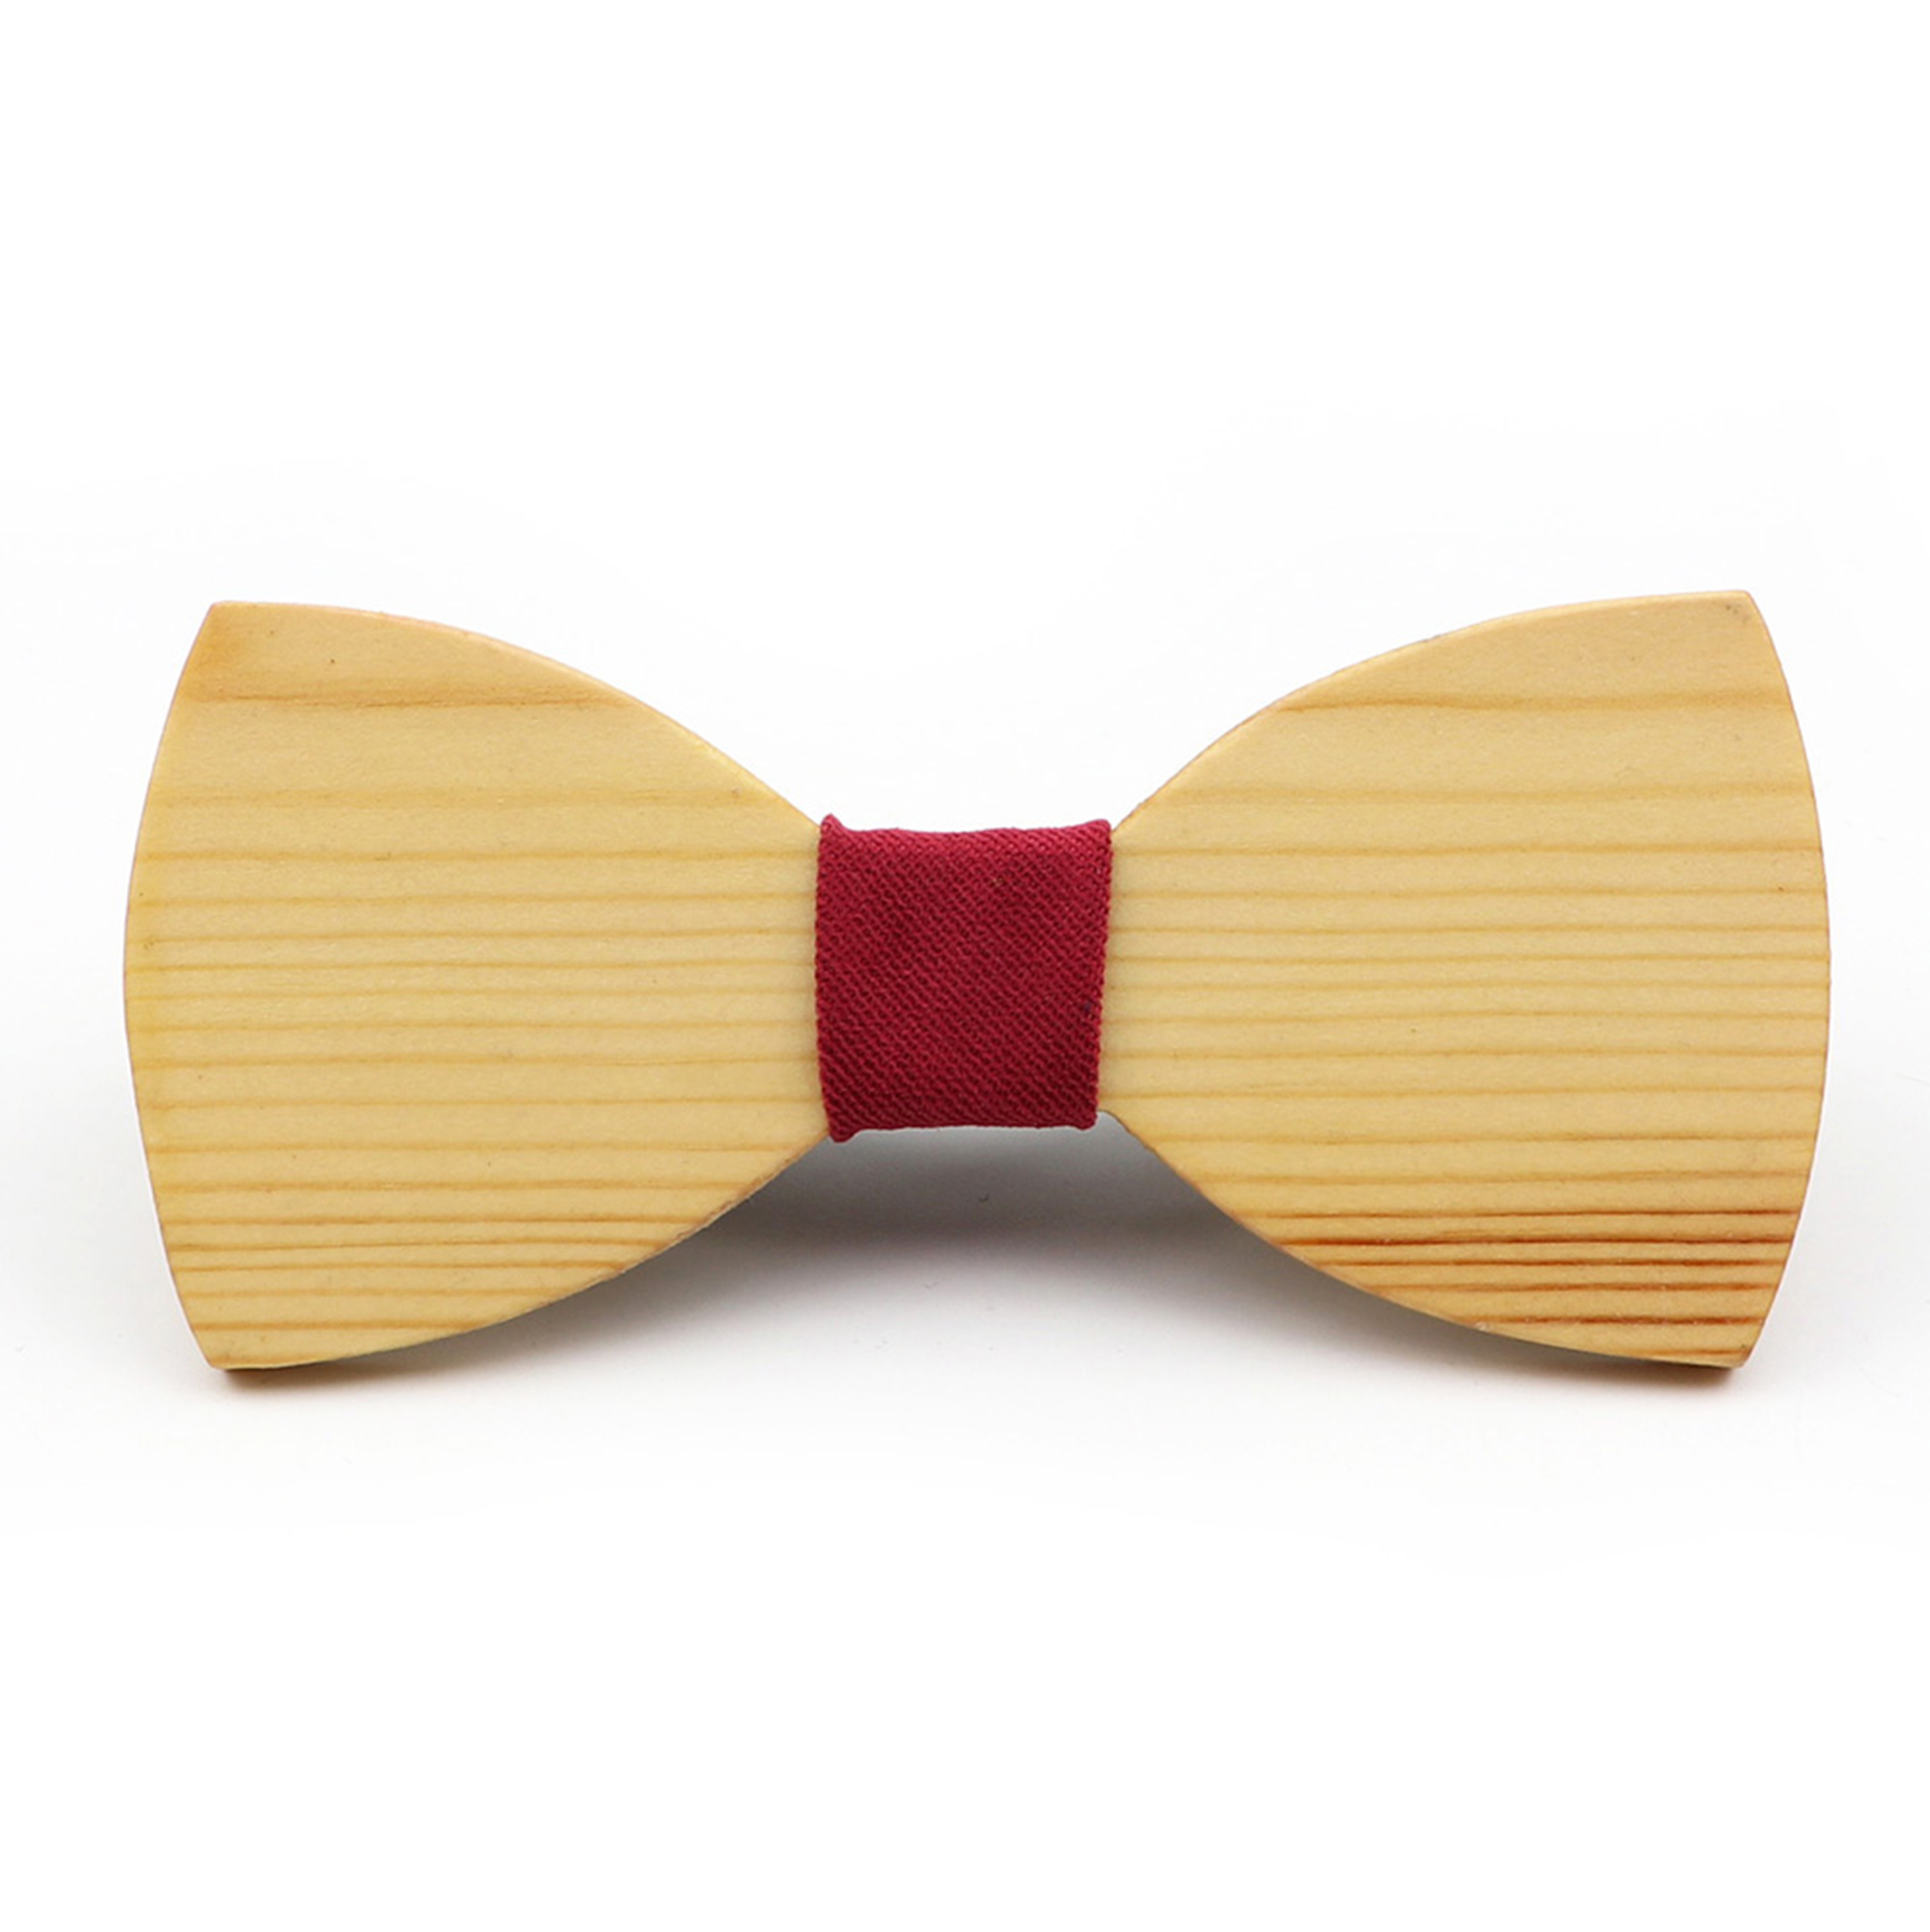 Fashion Men's Solid Wooden Bow Ties Novelty Handmade Neckwear Business Butterfly Wedding Party Bowtie High Quality Accessories